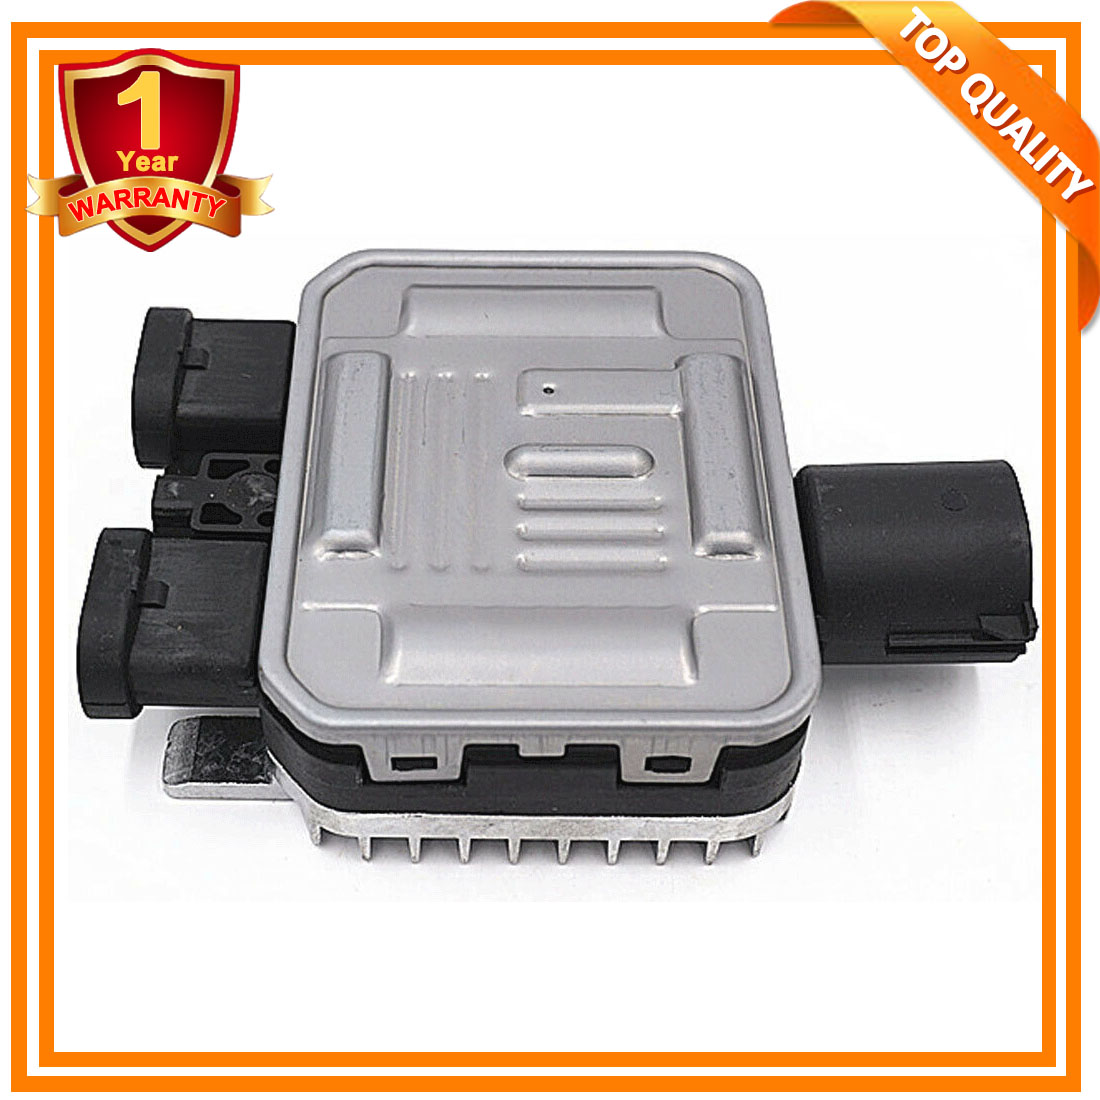 Relay Radiator Fan Control Module fit for Ford Galaxy Mondeo S-MAX Volvo V70 S60